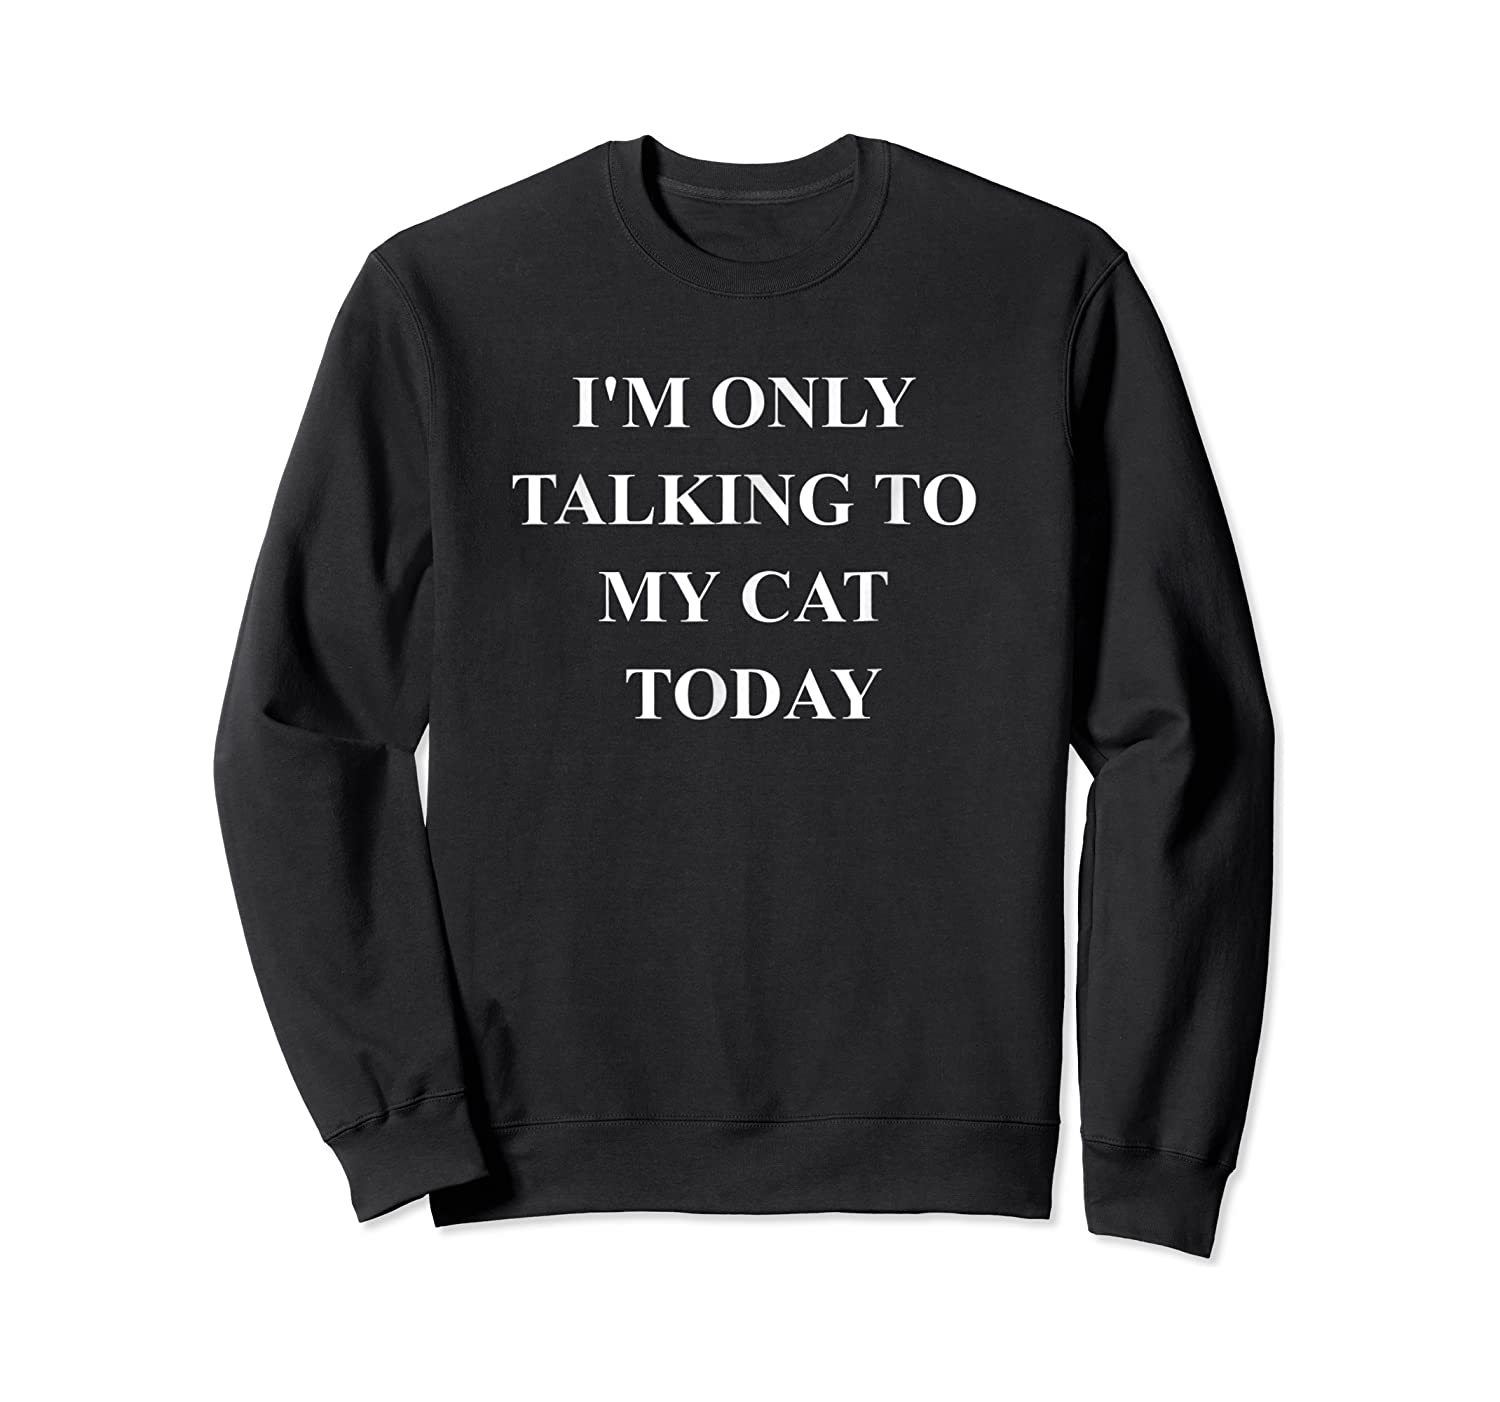 Funny Cat Quote Shirts - Gifts For Cat Moms Lovers For  Crewneck Sweater